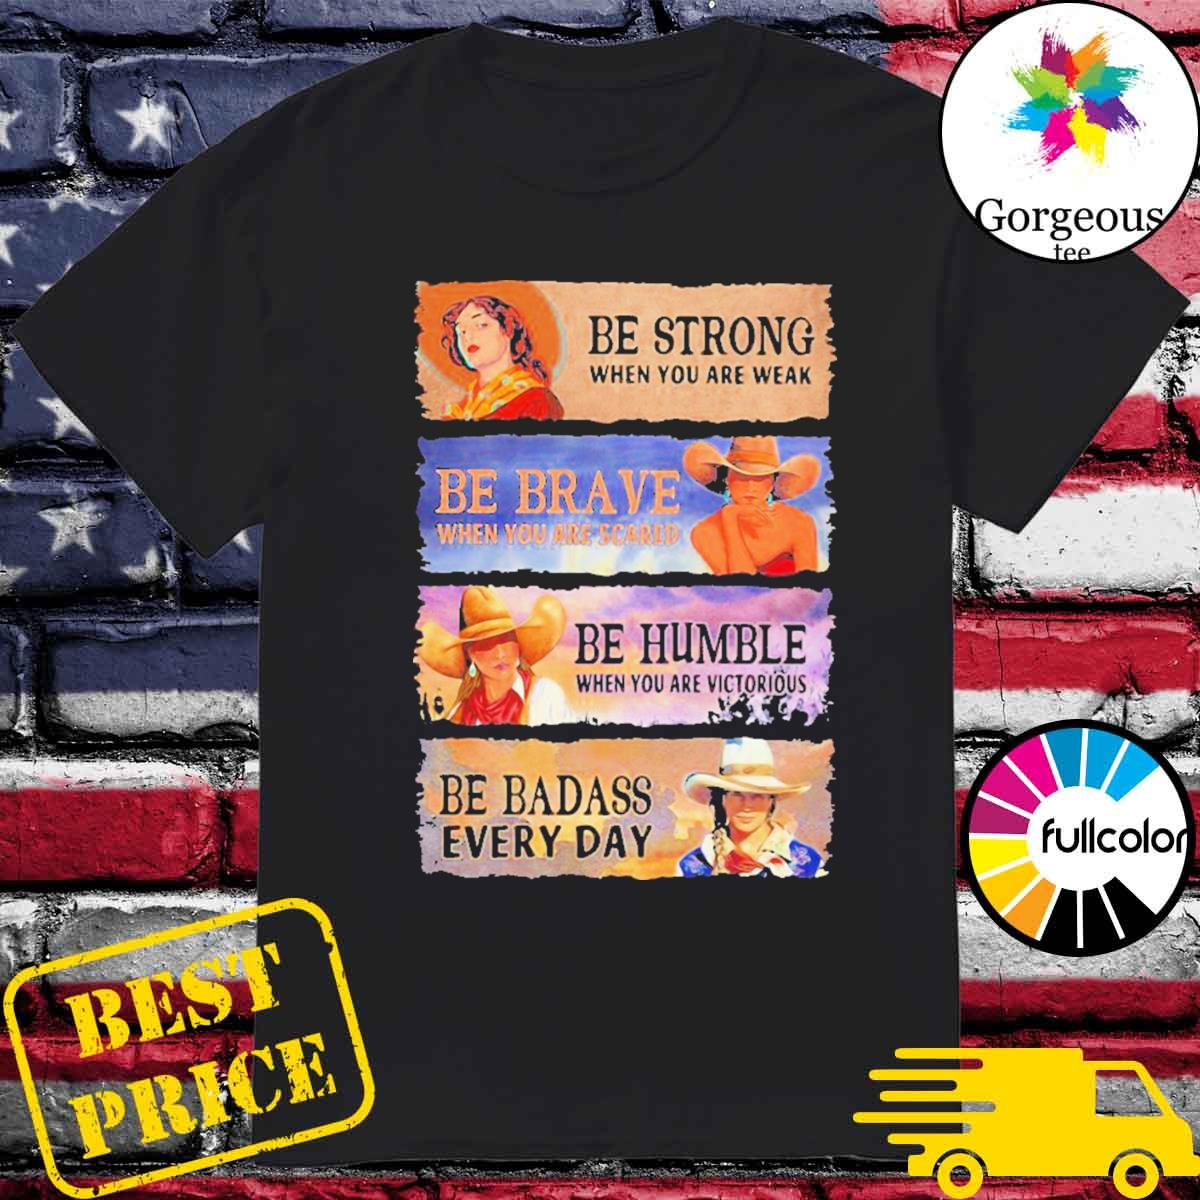 Be strong when you are weak be brave be humble be badass everyday cowboy girl shirt